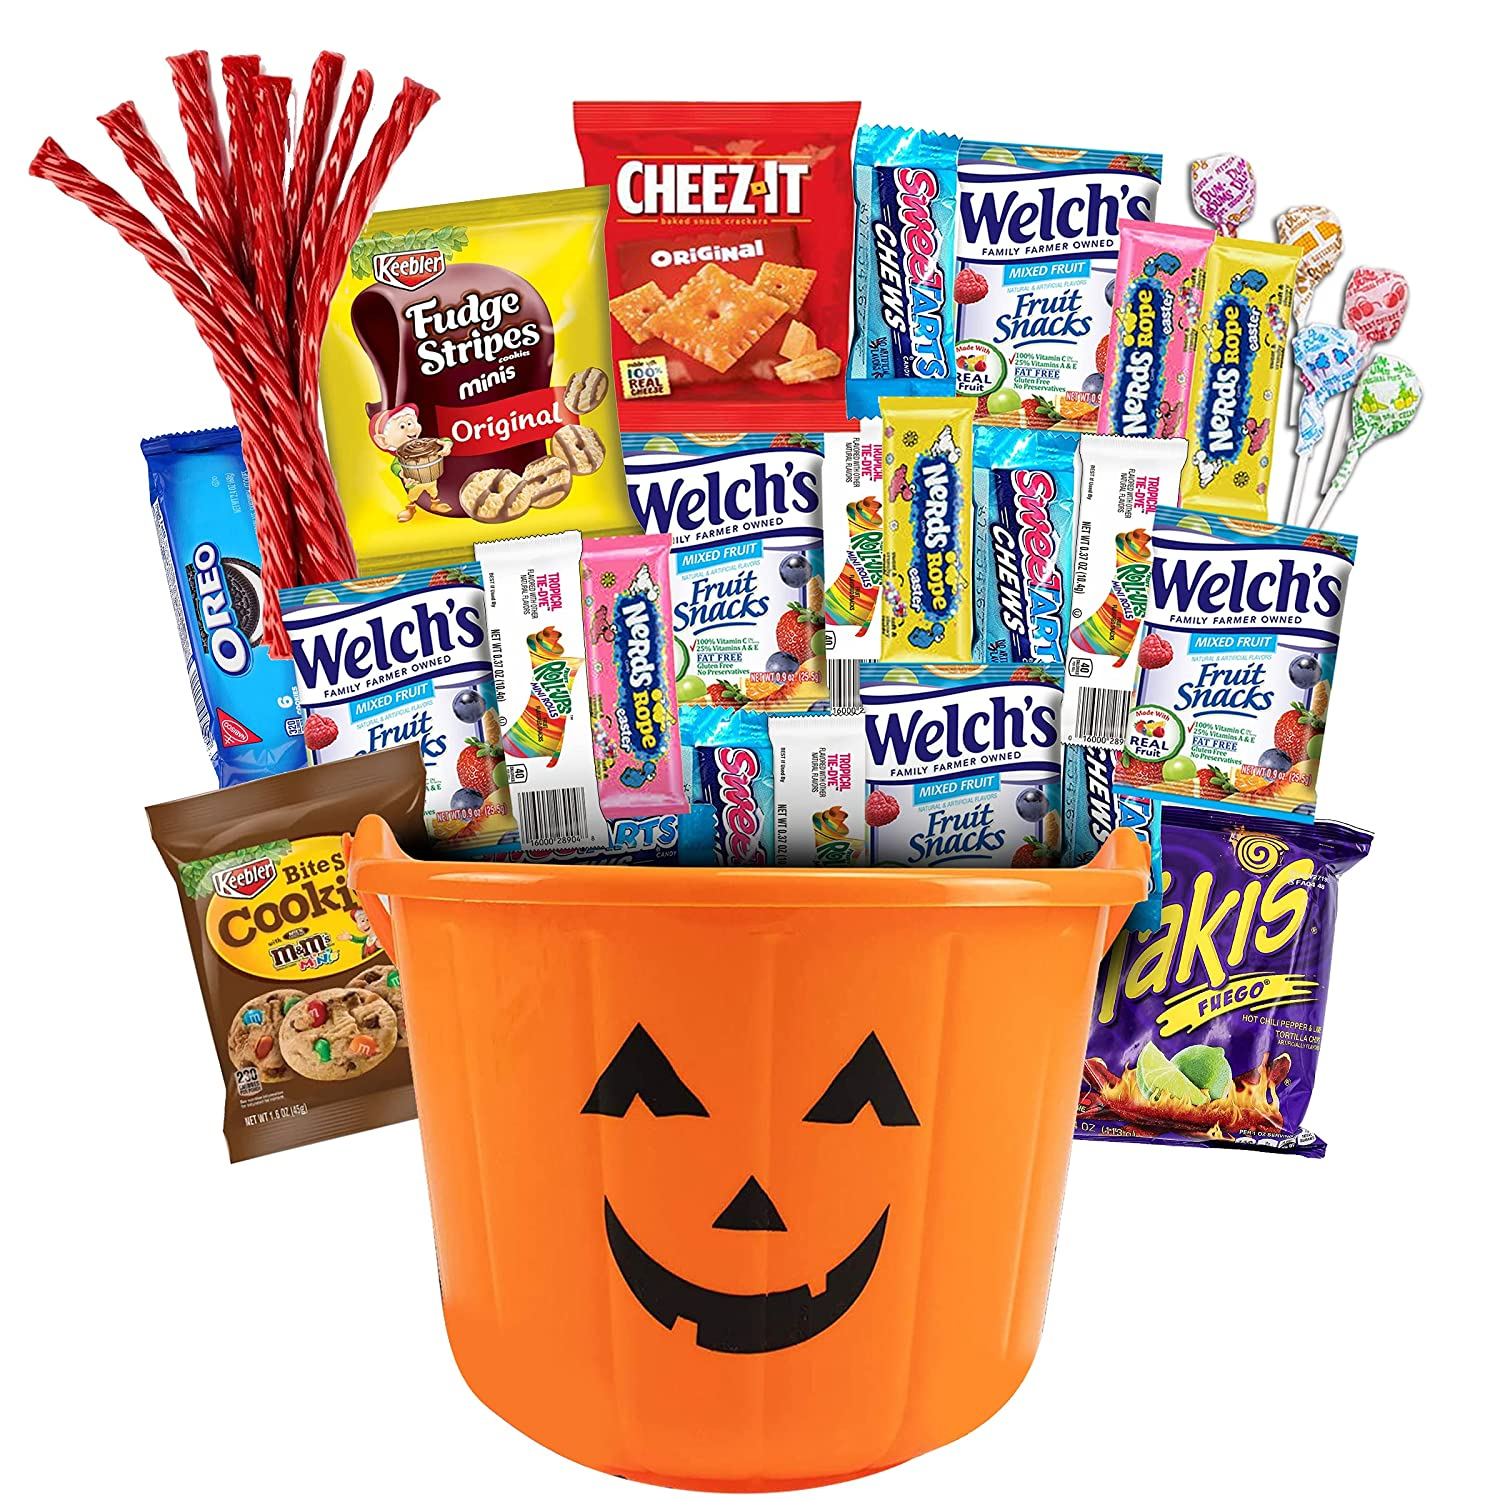 Halloween Care Package Gift Basket 38 pack Candy Snacks Assortment Trick or Treat Cookies Food Bars Toys Variety Gift Pack Box Bundle Mixed Halloween bucket for Children Kids Boys Girls College Students